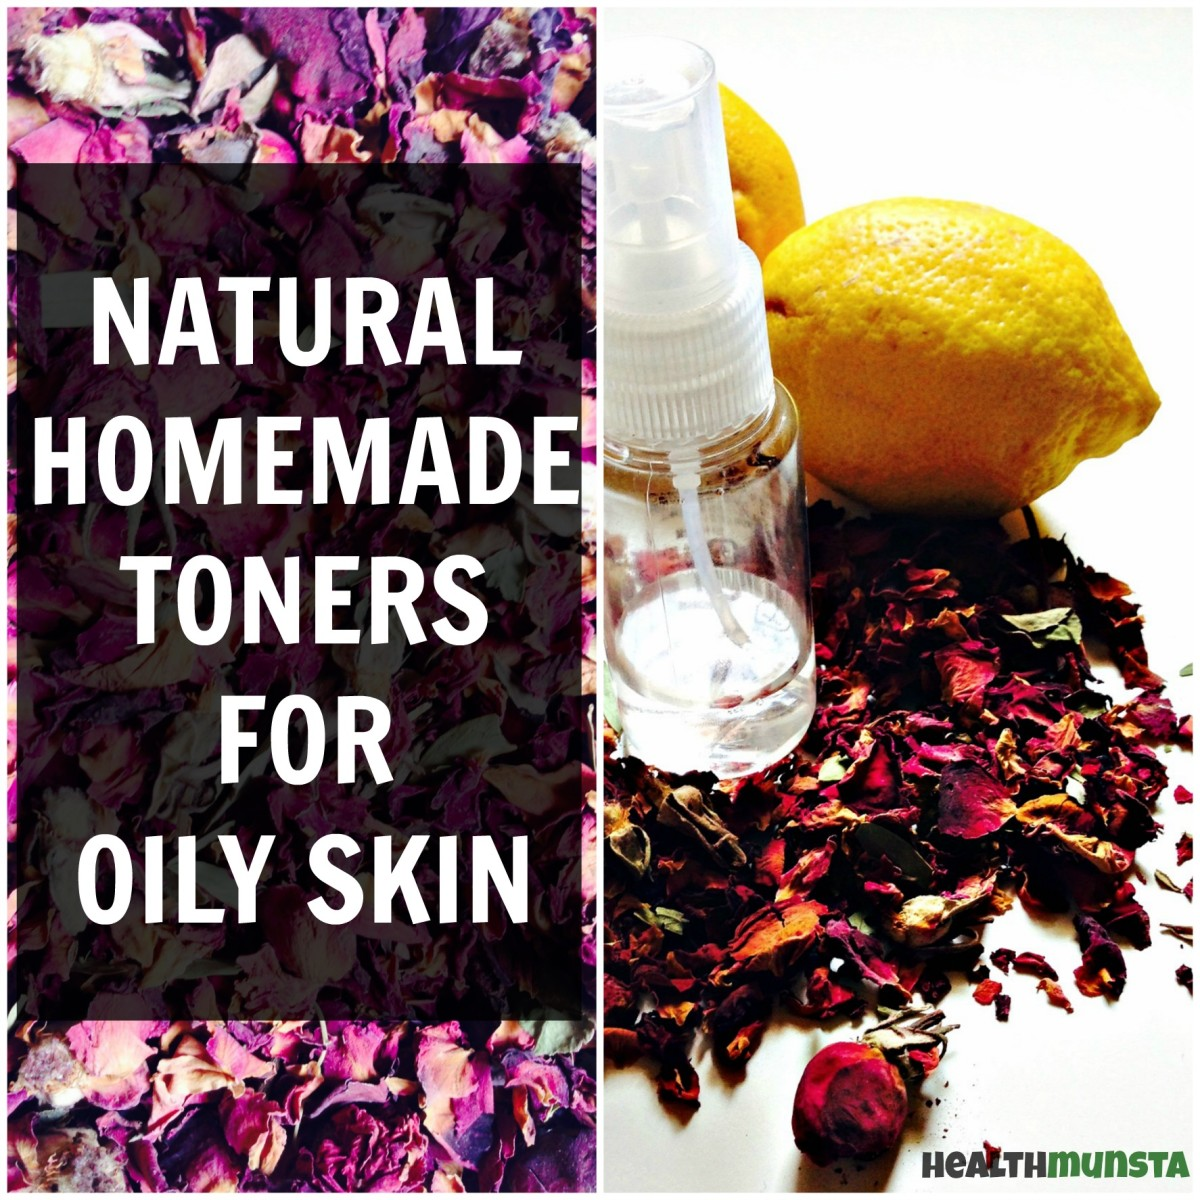 Ditch the chemical toners and make your own homemade natural toner with gentle & safe ingredients.